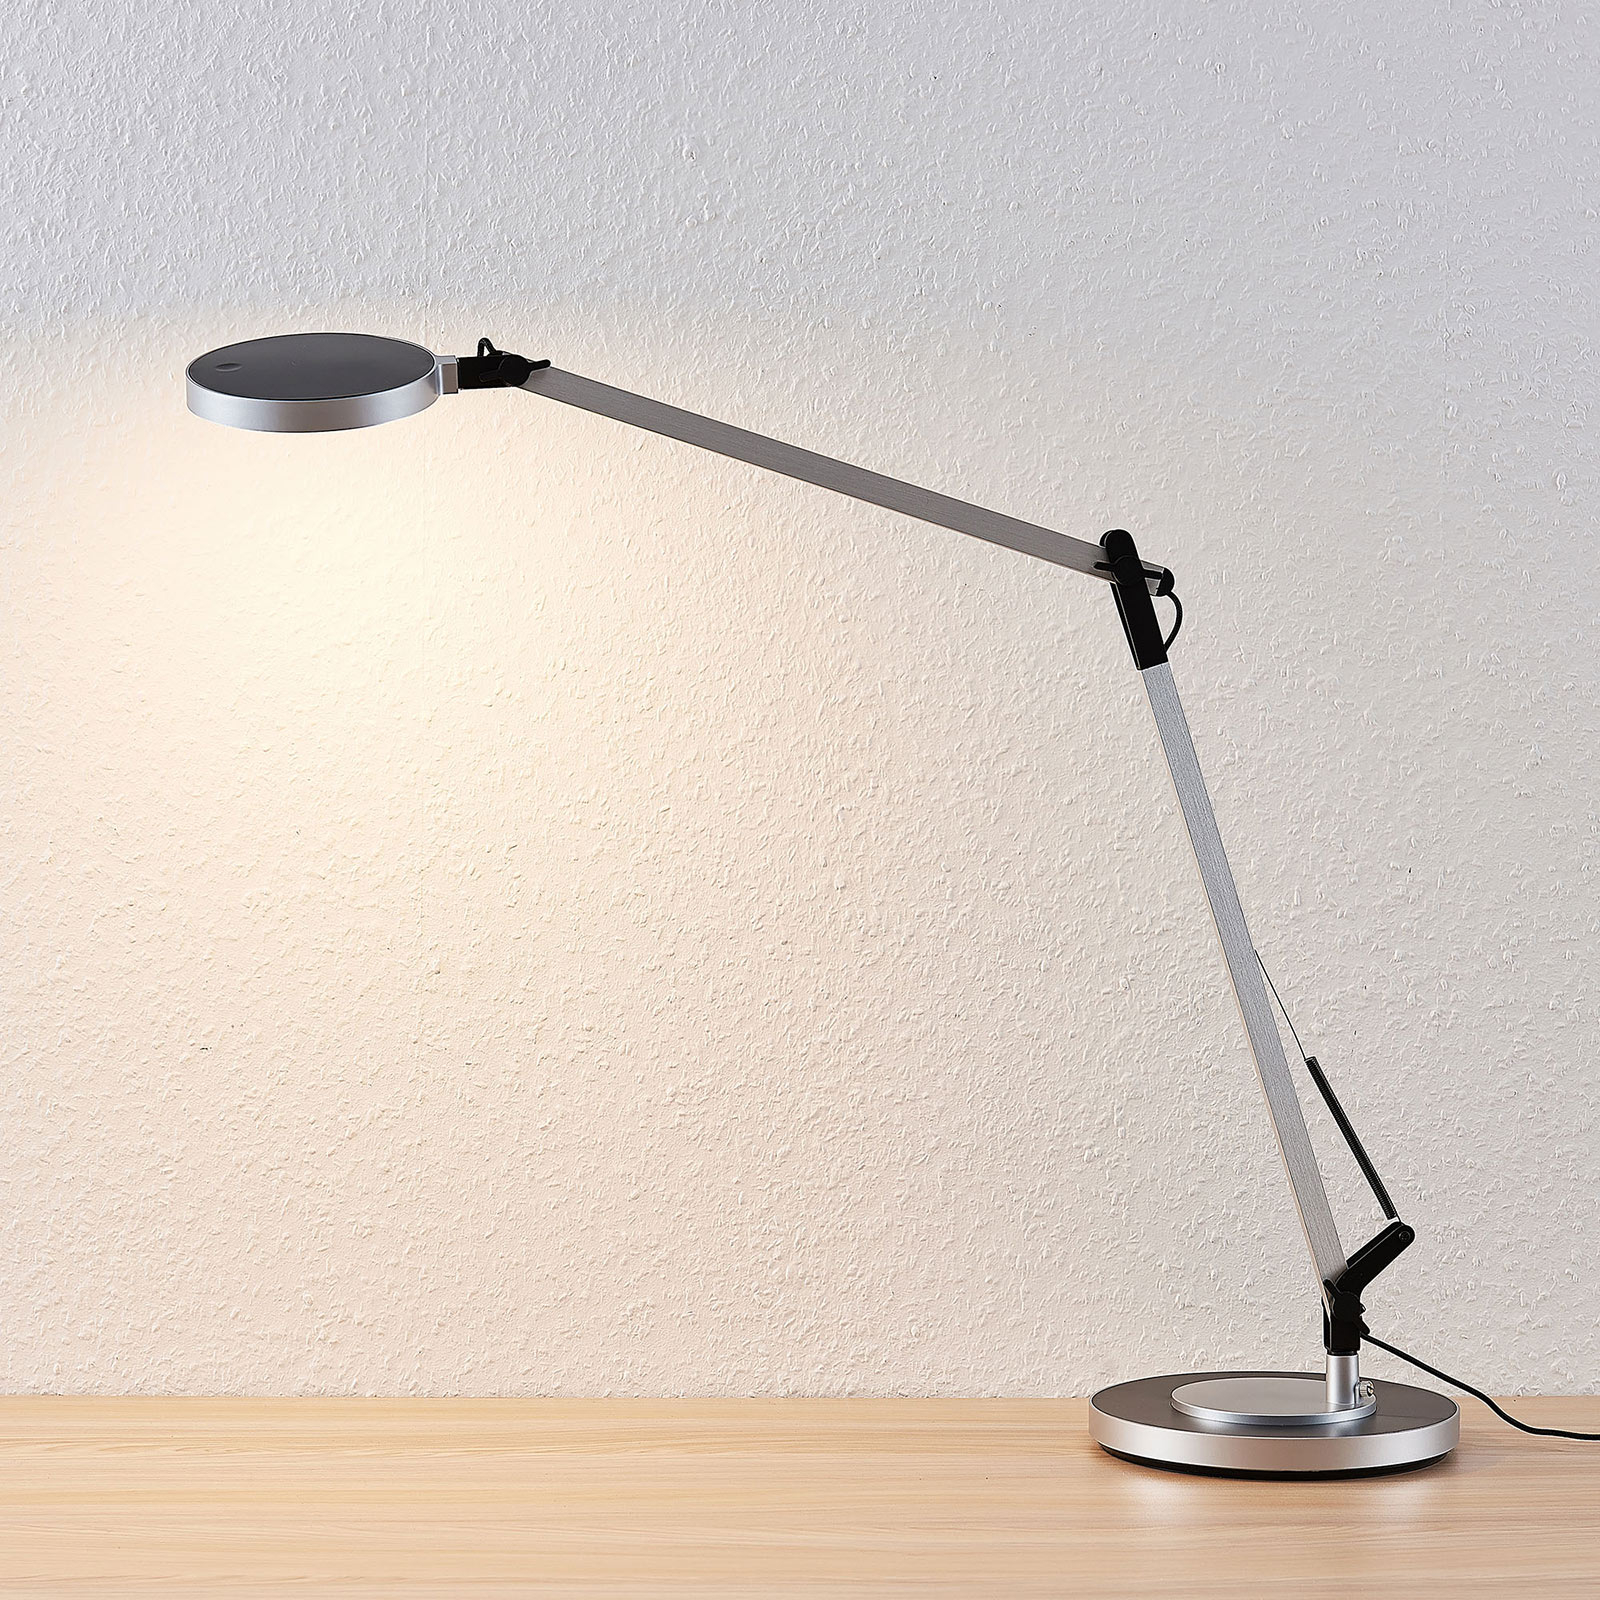 Lampe Mit Dimmer Rilana Led Desk Lamp With Dimmer, Silver | Lights.co.uk